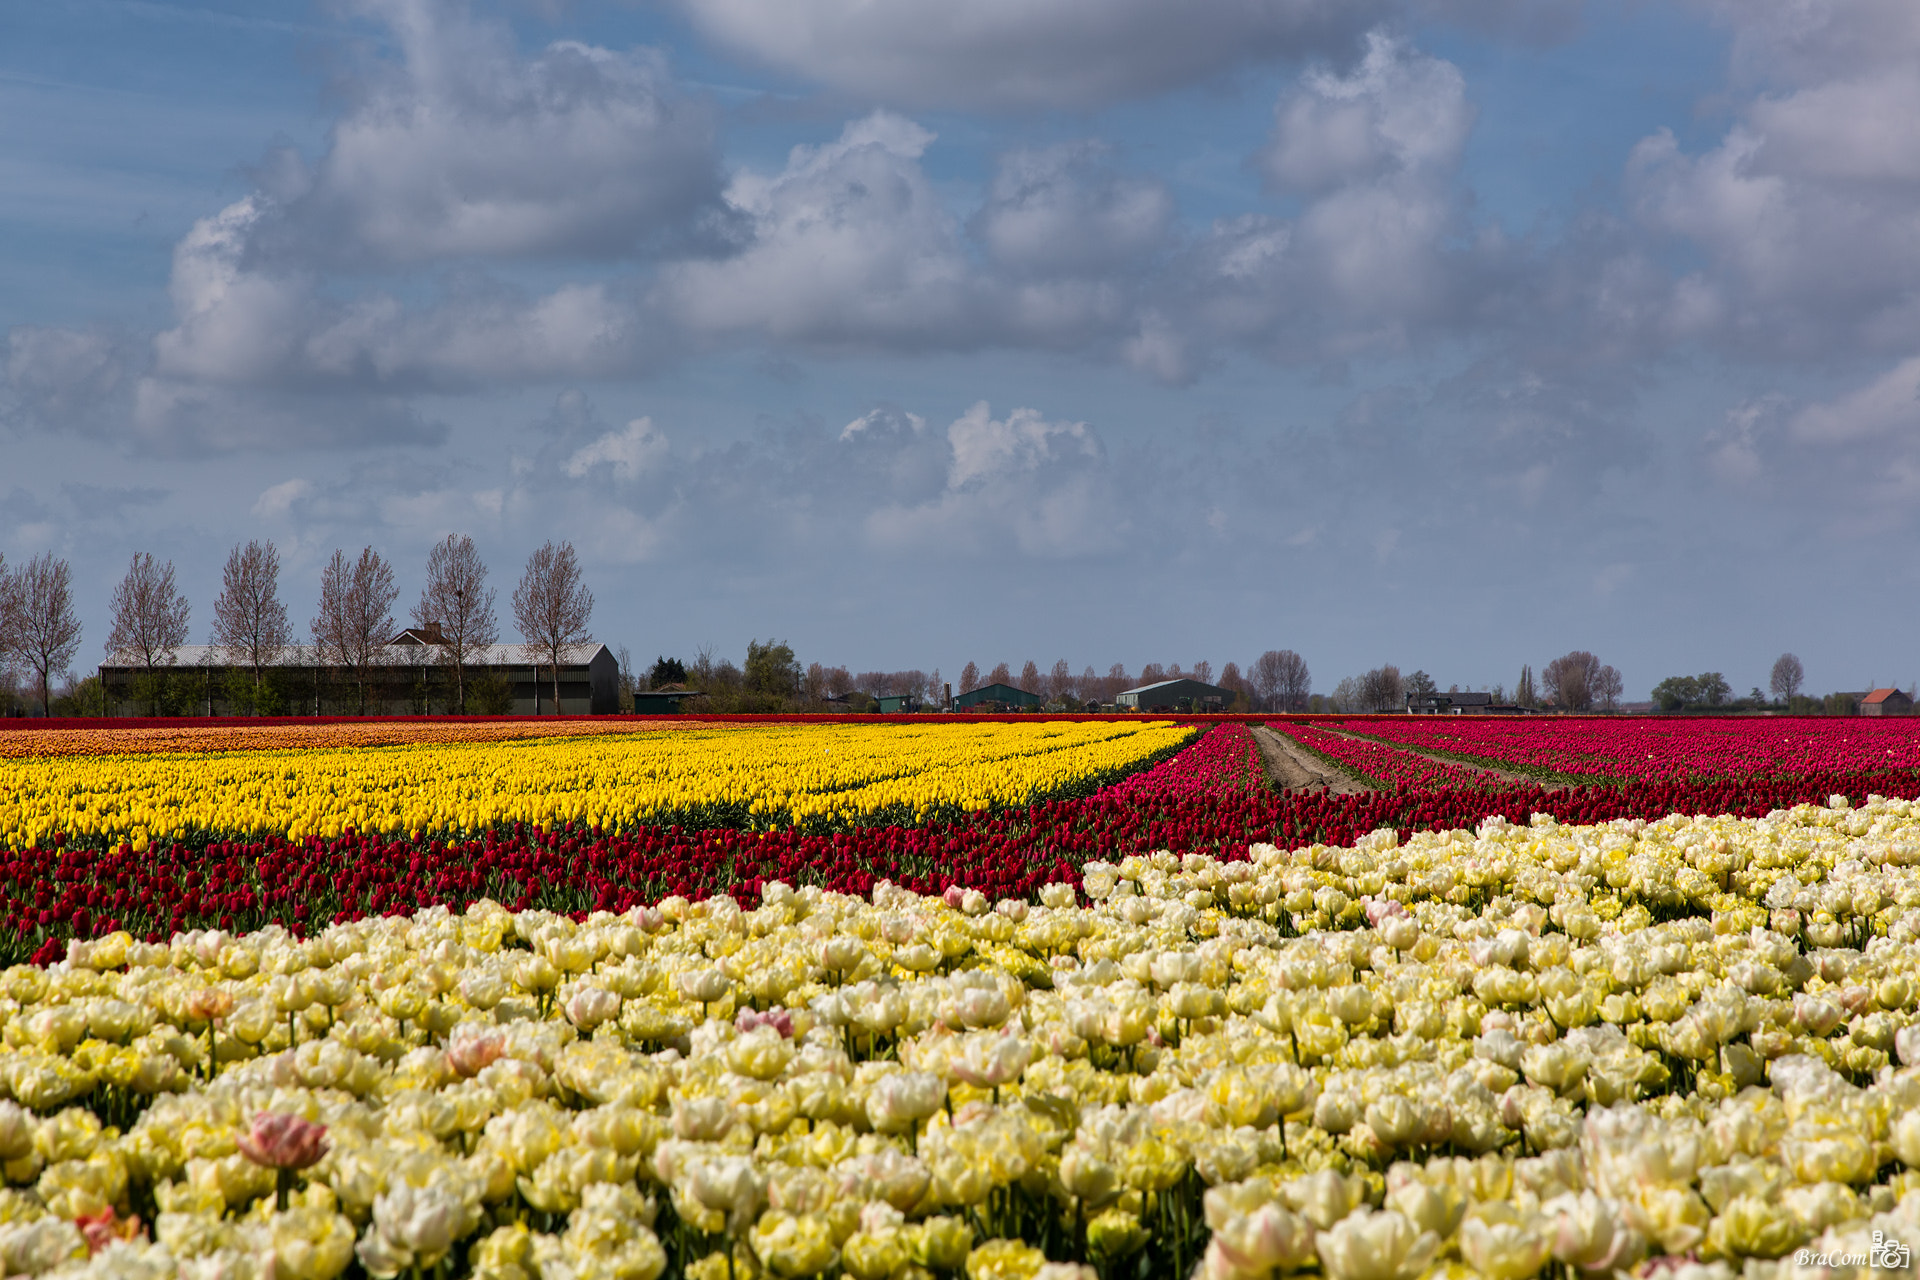 Photograph Tulips in Rainbow Colors by Bram van Broekhoven on 500px